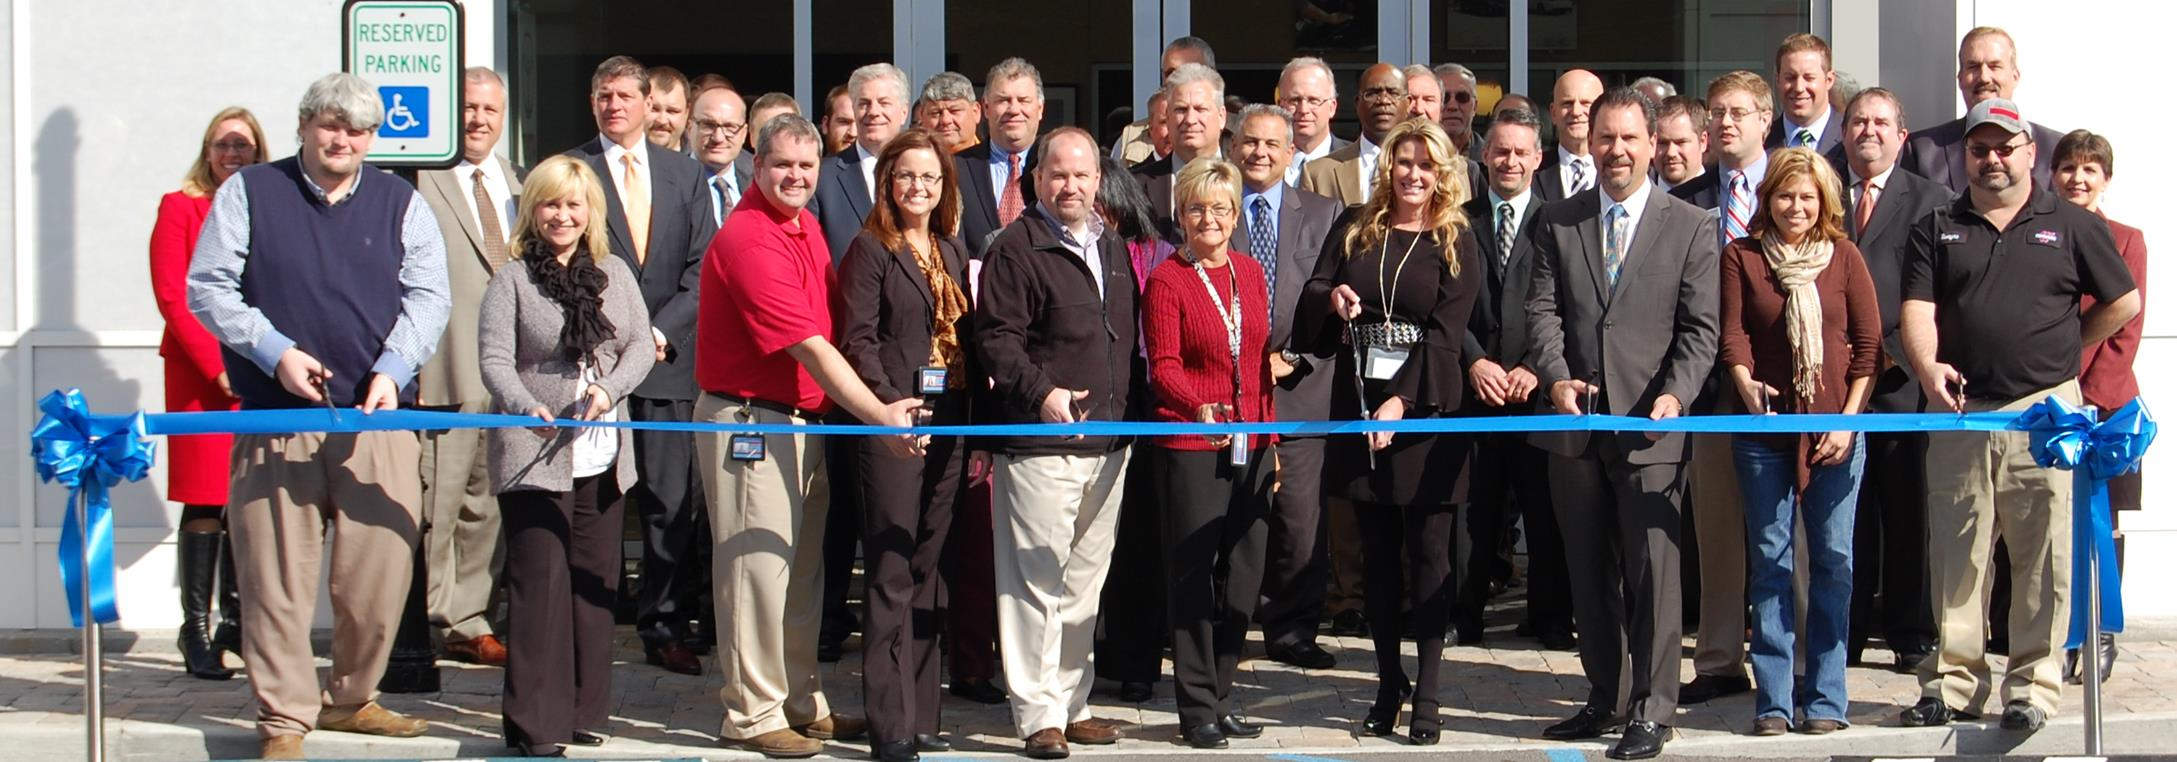 Marvelous Walters Toyota Dedicates New Dealership In Pikeville   Southeast Kentucky  Chamber Of Commerce | Pikevill, KY